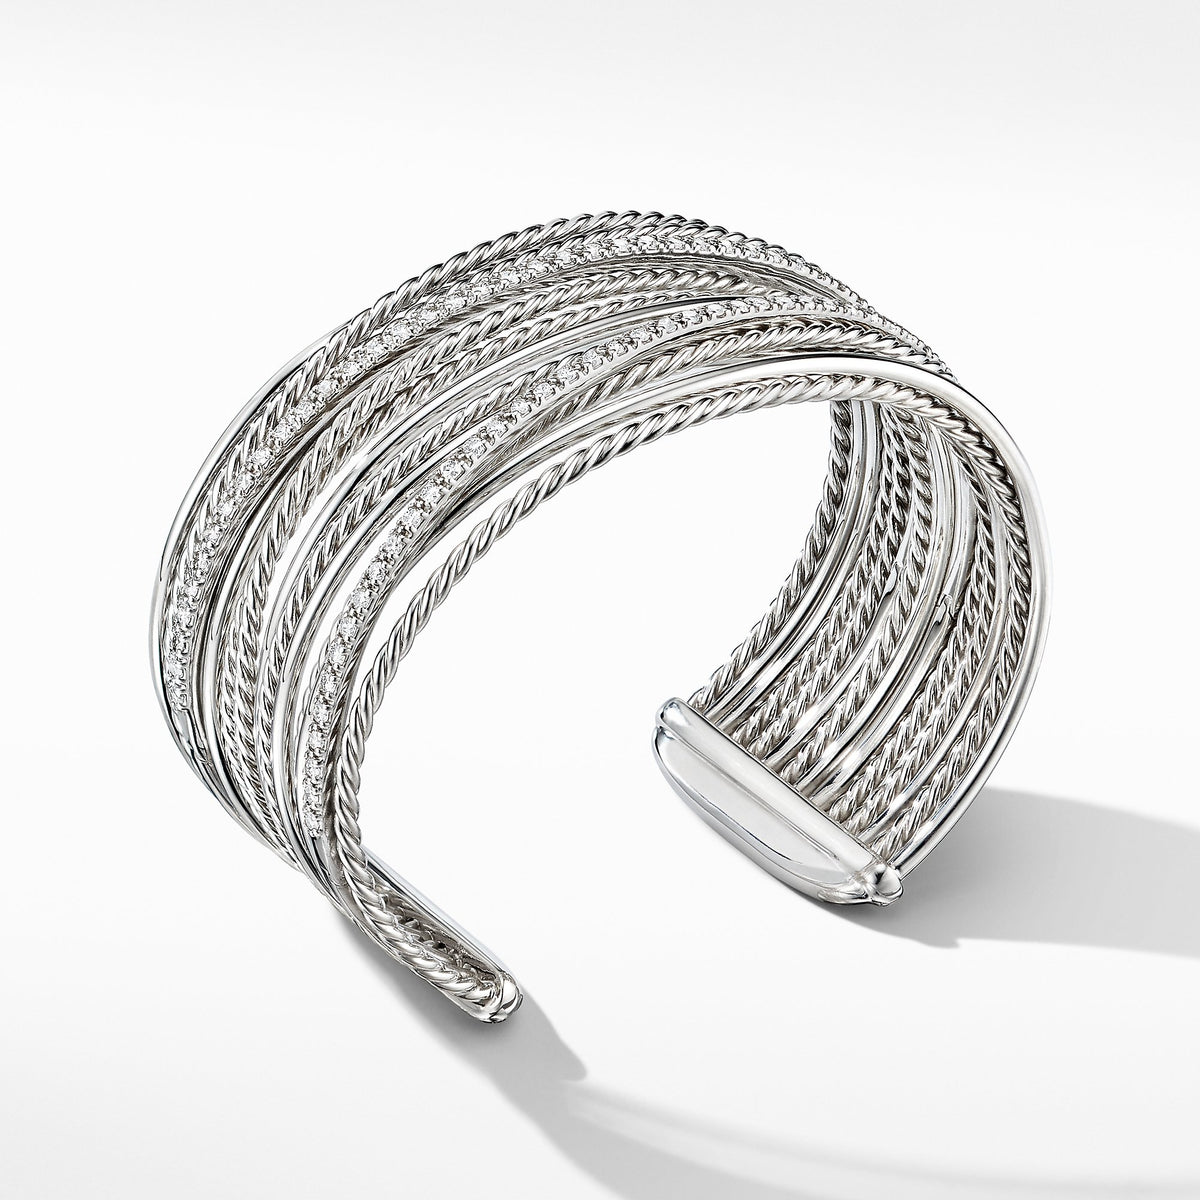 The Crossover Collection Cuff Bracelet with Diamonds